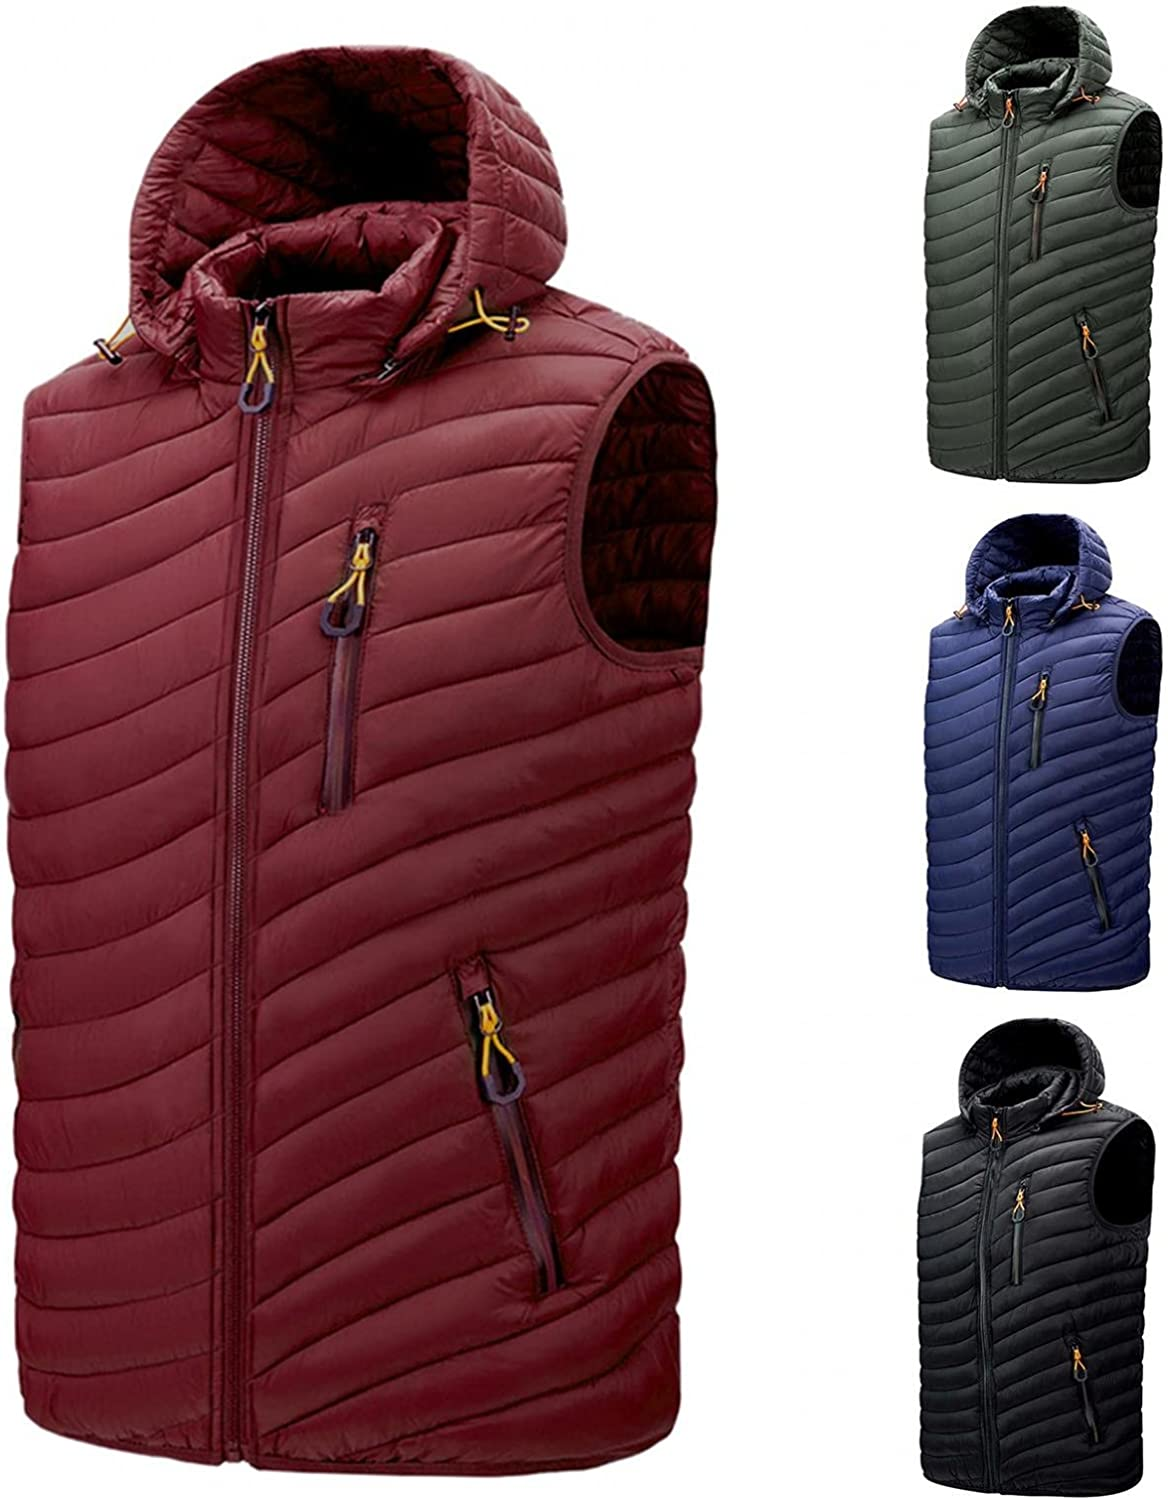 Huangse Sleeveless Hoodie for Men Autumn Winter Puffer Vest Coat Padded Vest Warm Hooded Thick Tops Jacket